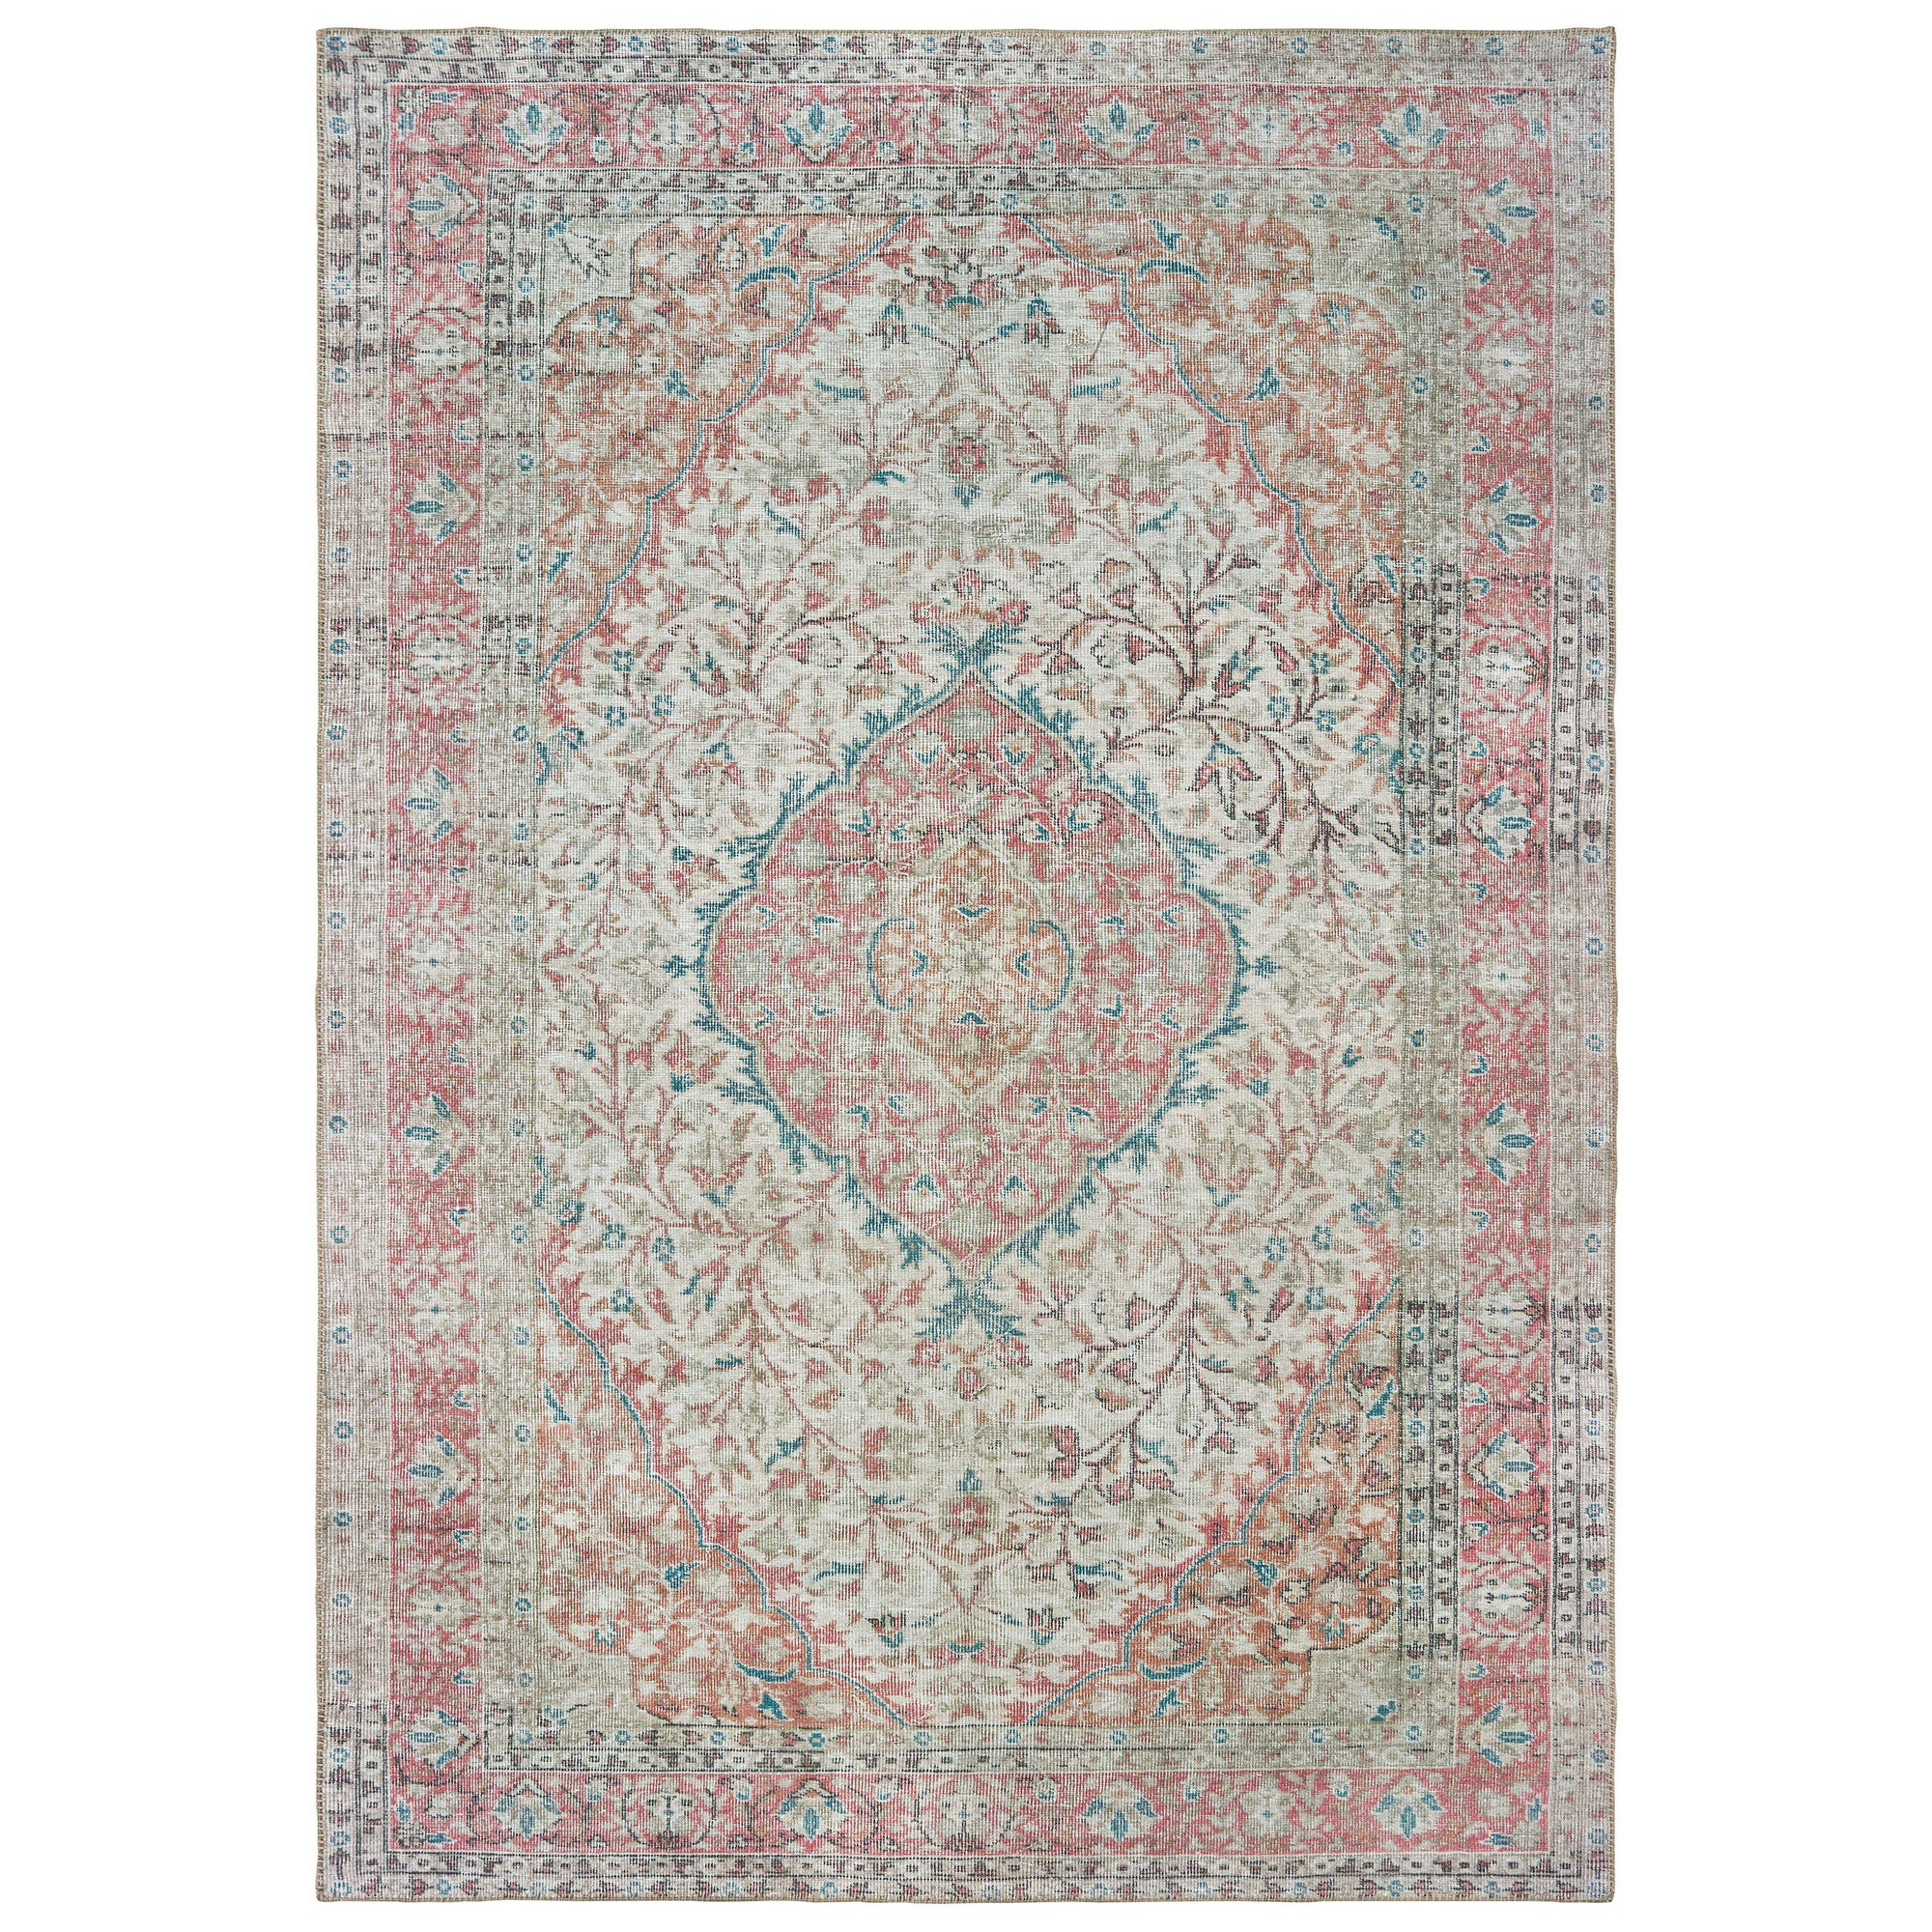 "The Rug Truck Shayna 85812 Ivory Area Rug (8' 3"" X 11' 6"")"